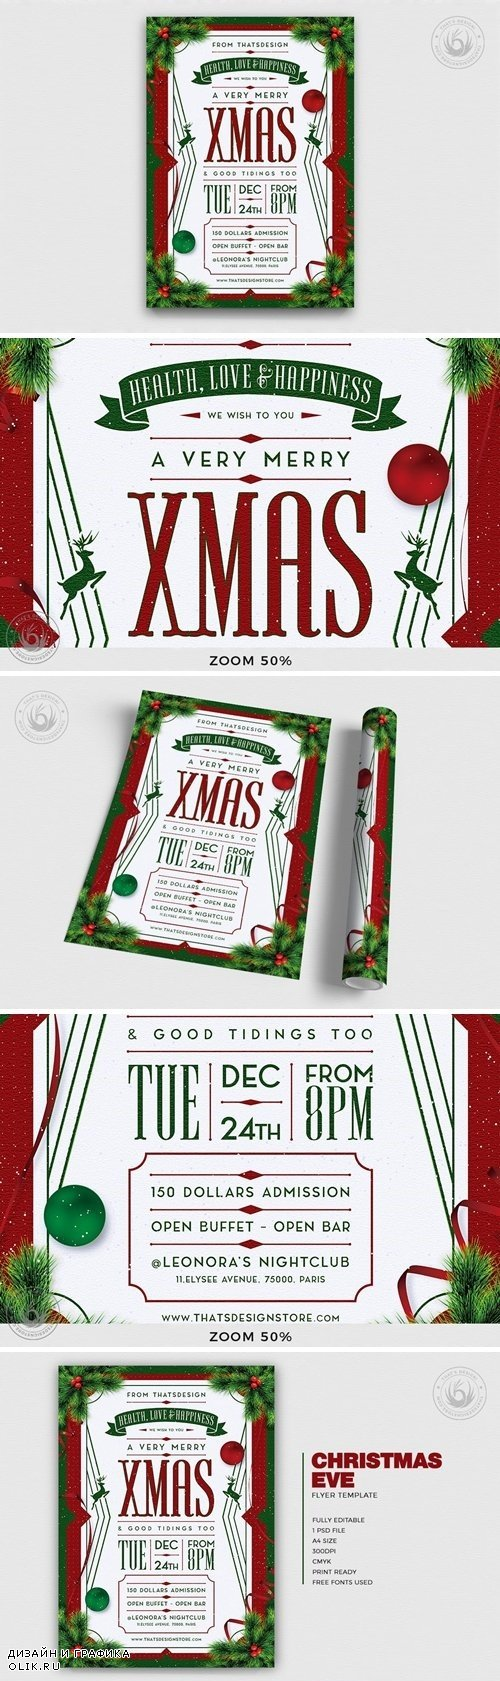 Christmas Eve Flyer Template V8 - 24803639 - 4187133